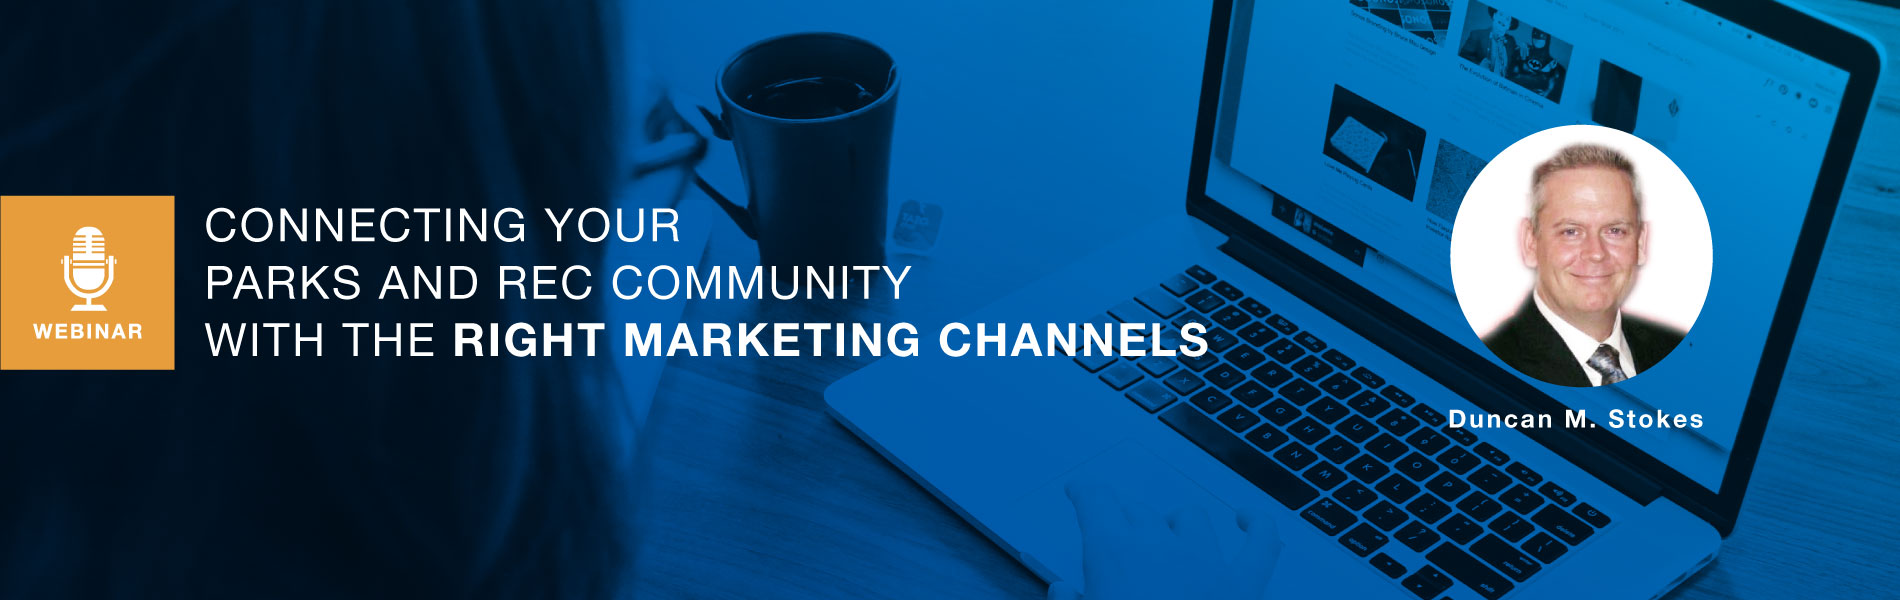 [Webinar] Connecting your Parks and Rec. Community with the Right Marketing Channels | PerfectMind